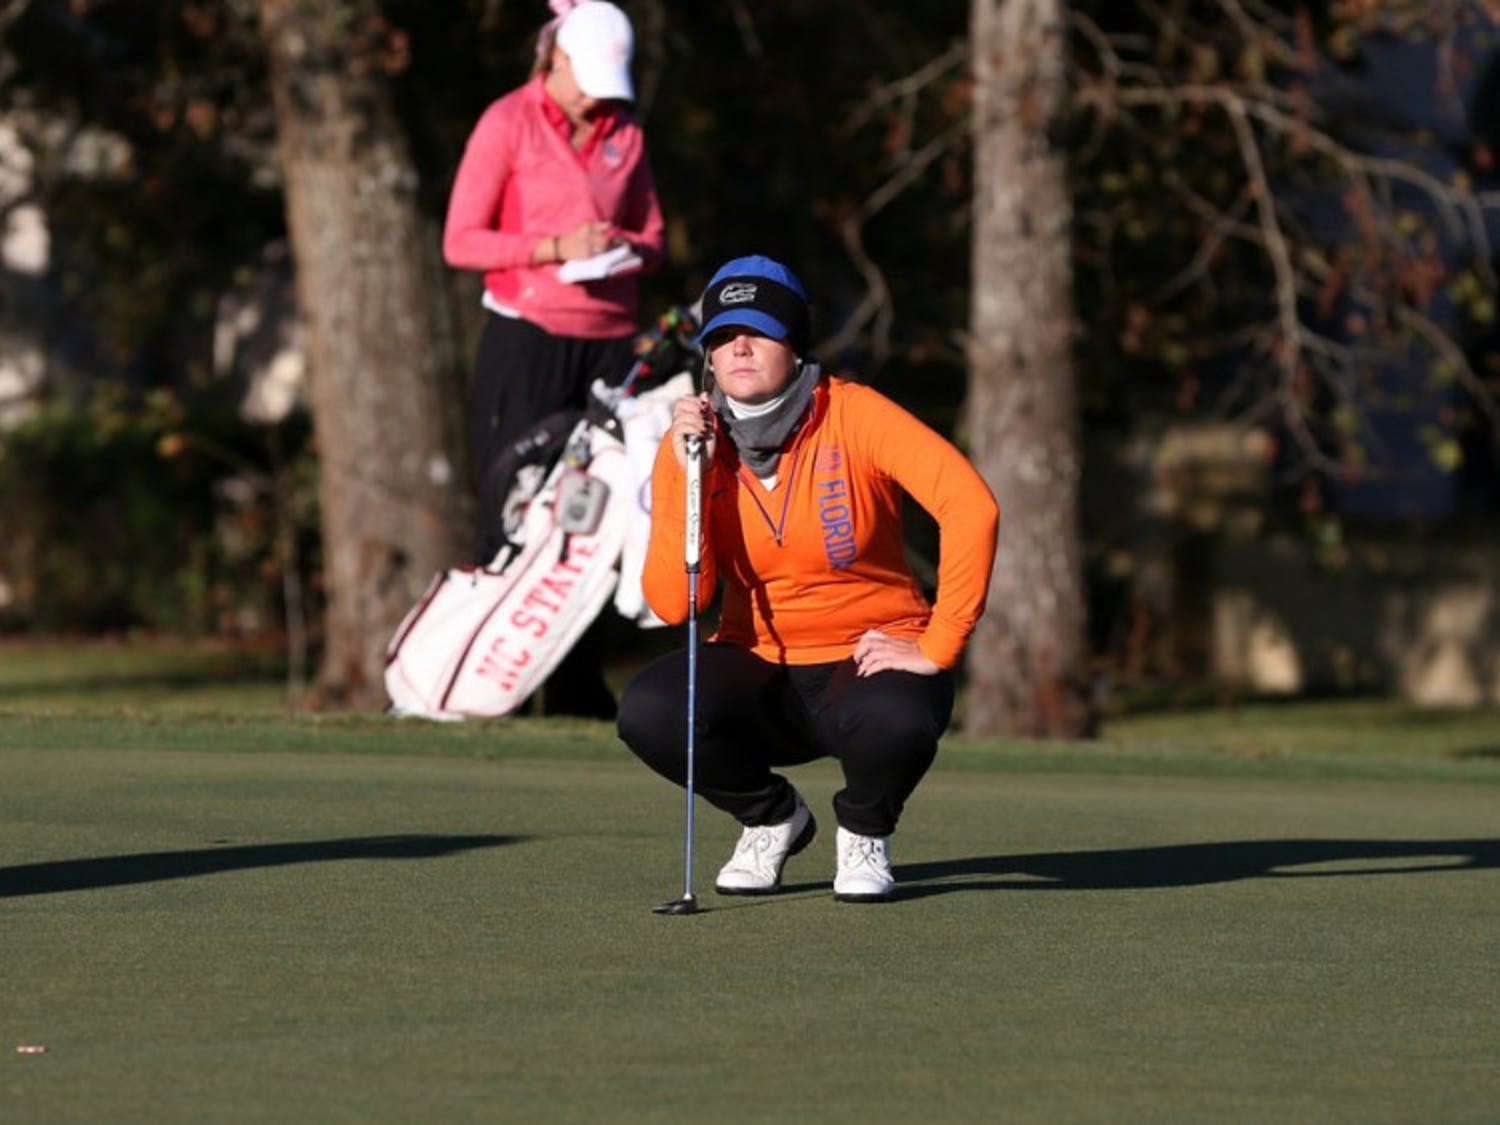 The Gators women's golf team finished 13th at the Landfall Tradition in North Carolina. Marta Perez had Florida's highest score at 3 over par, good for a share of 28th place.